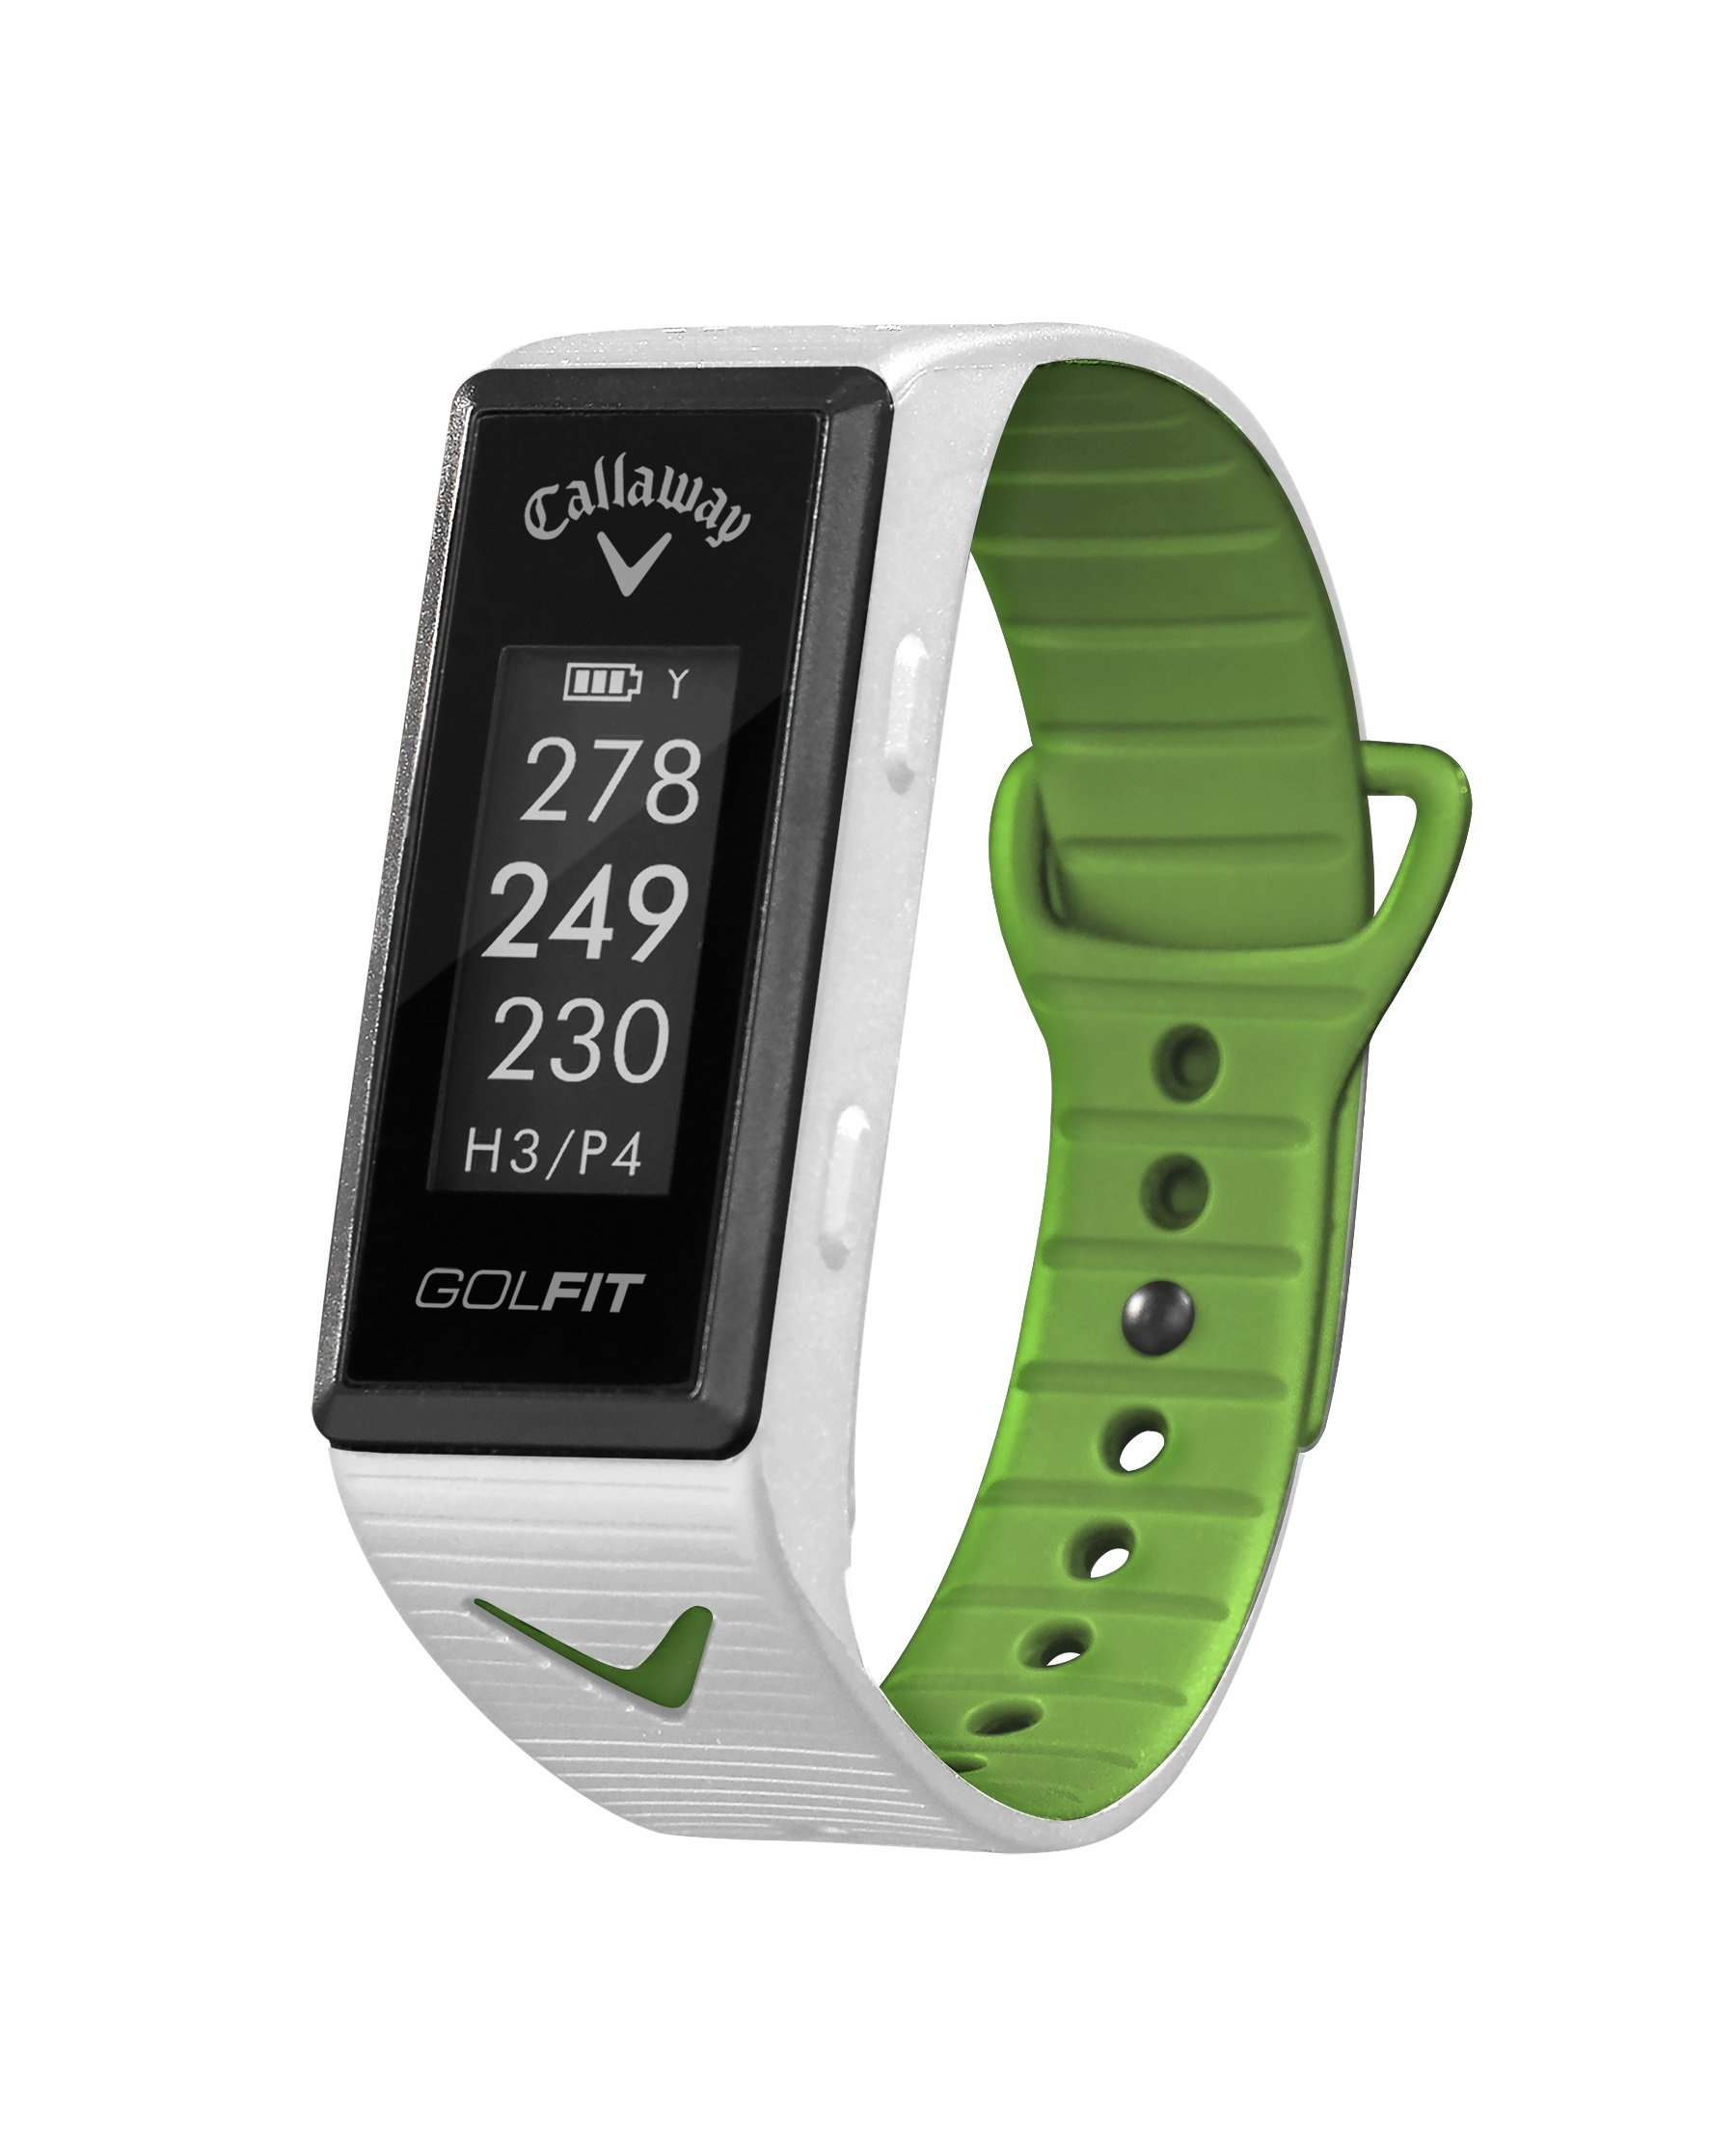 Callaway Golfit Golf GPS Sport Band (with Fitness Tracking) - White by Callaway